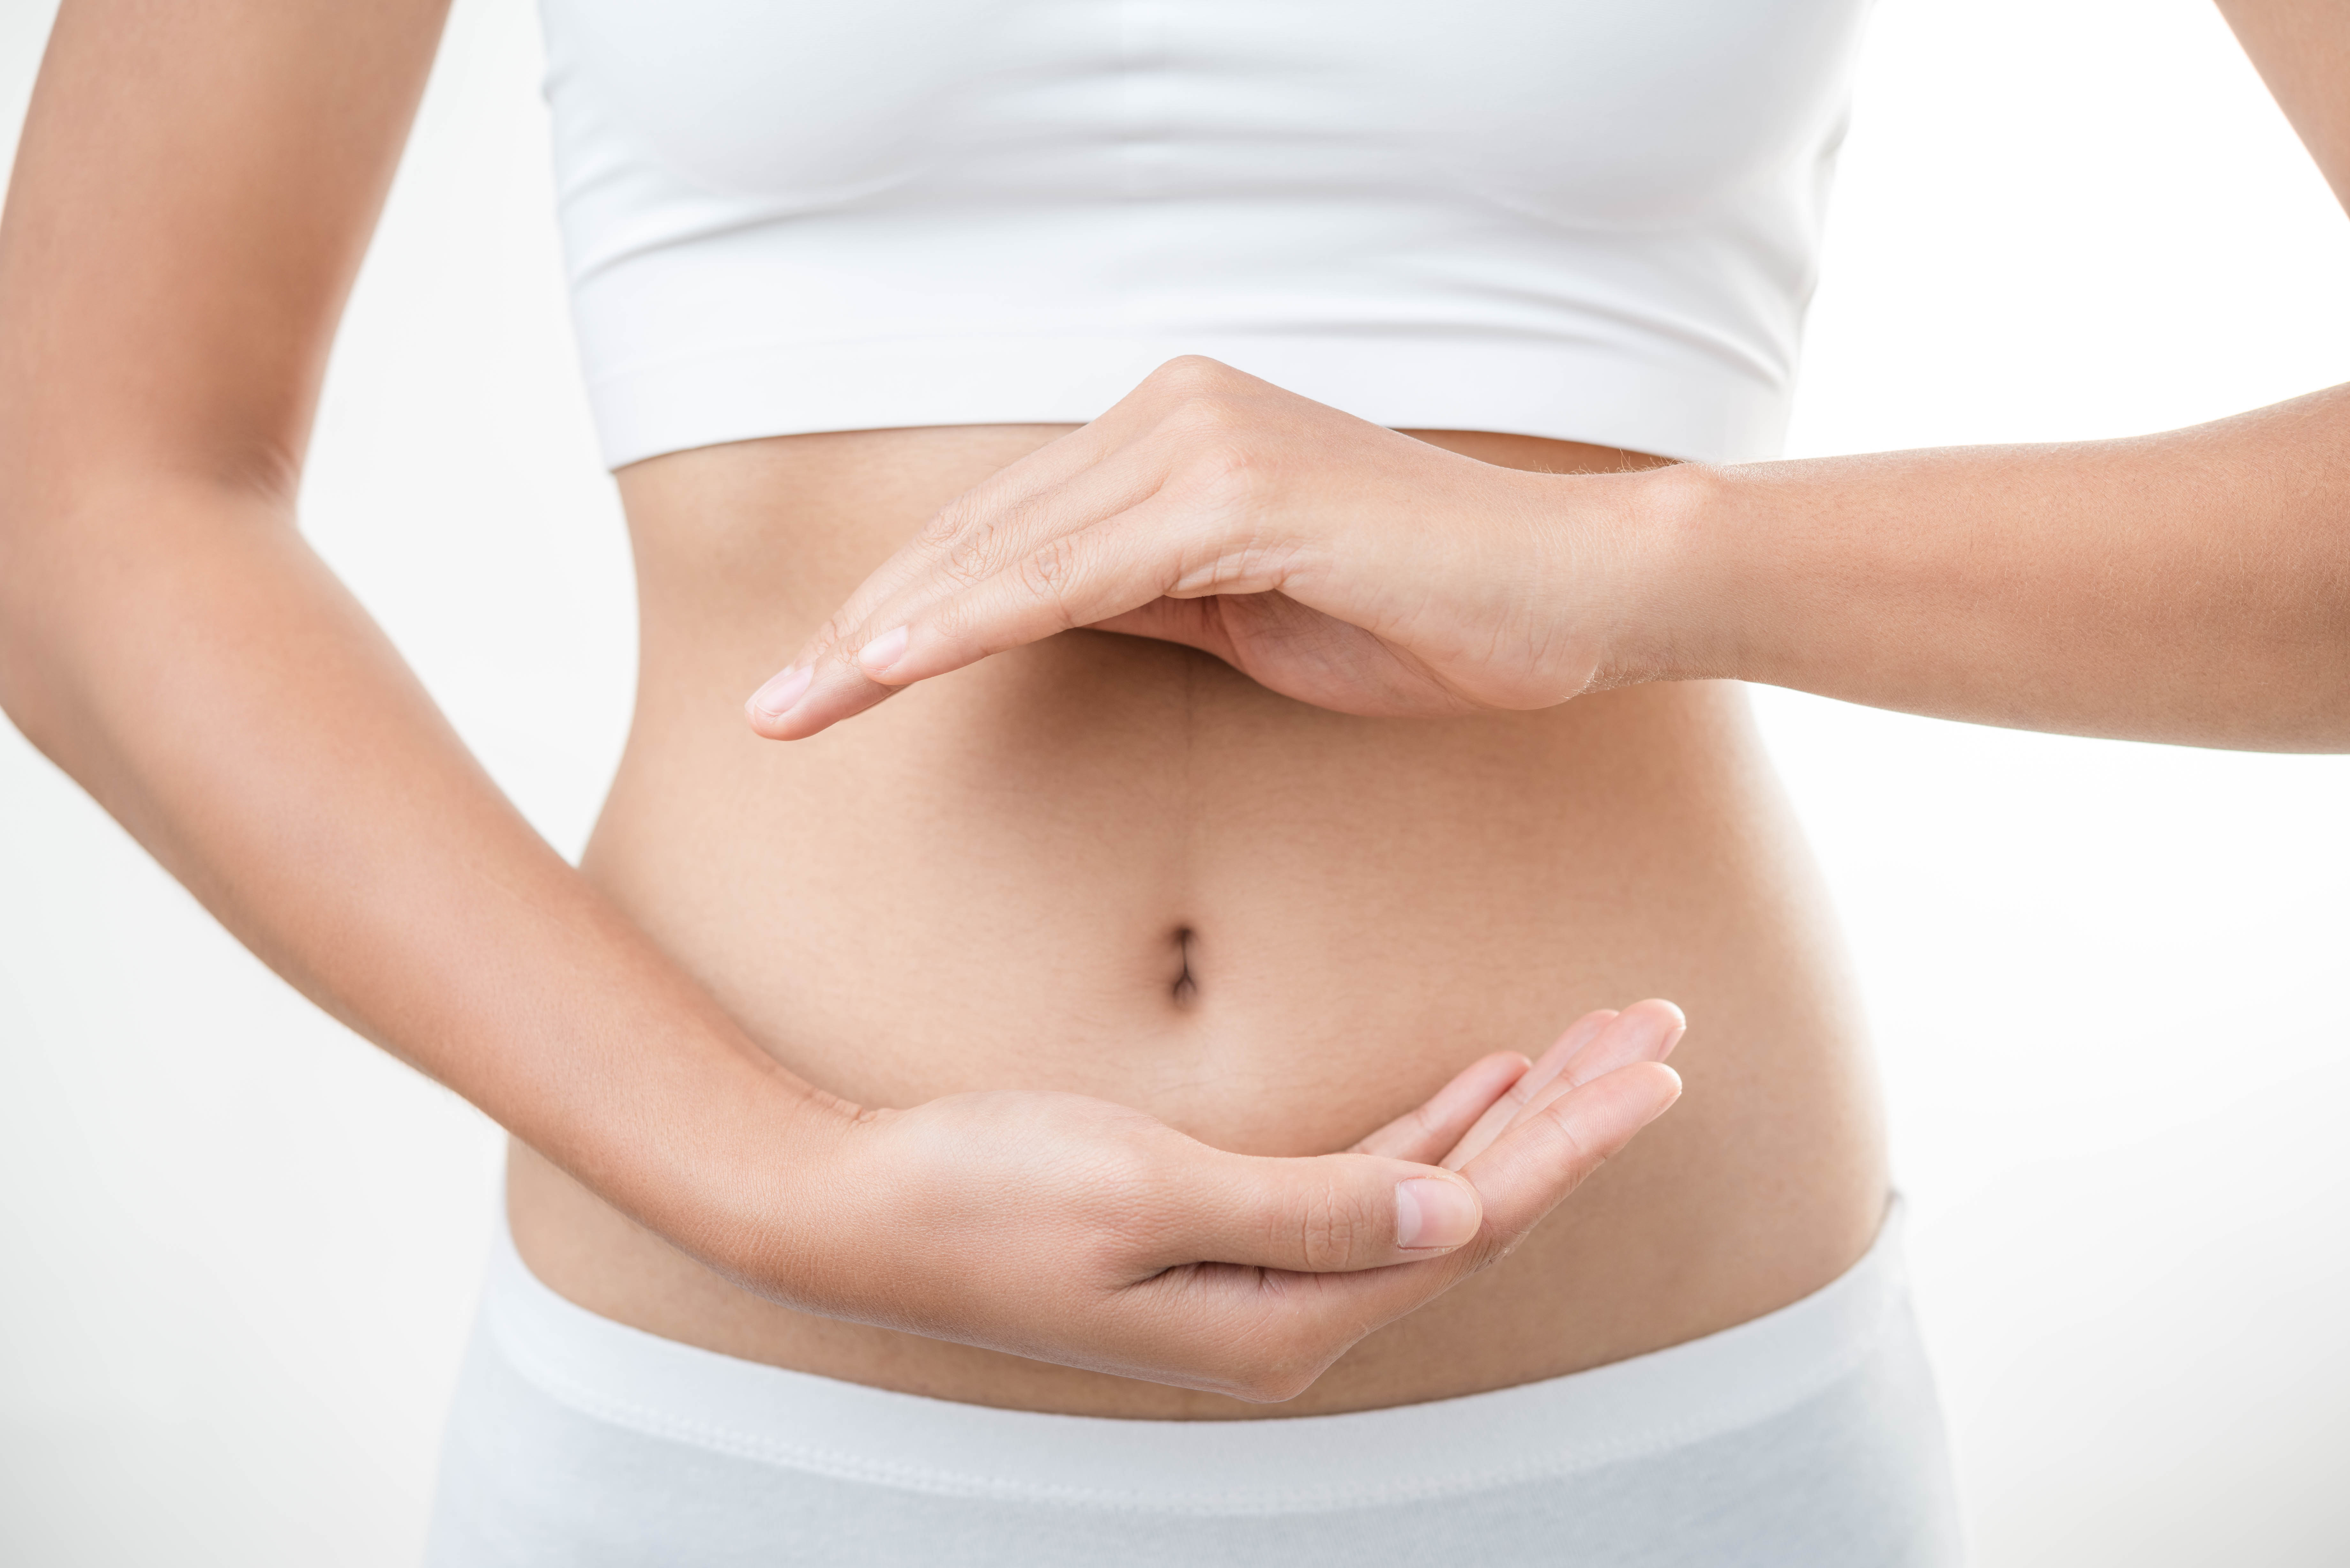 woman with hands over abdomen